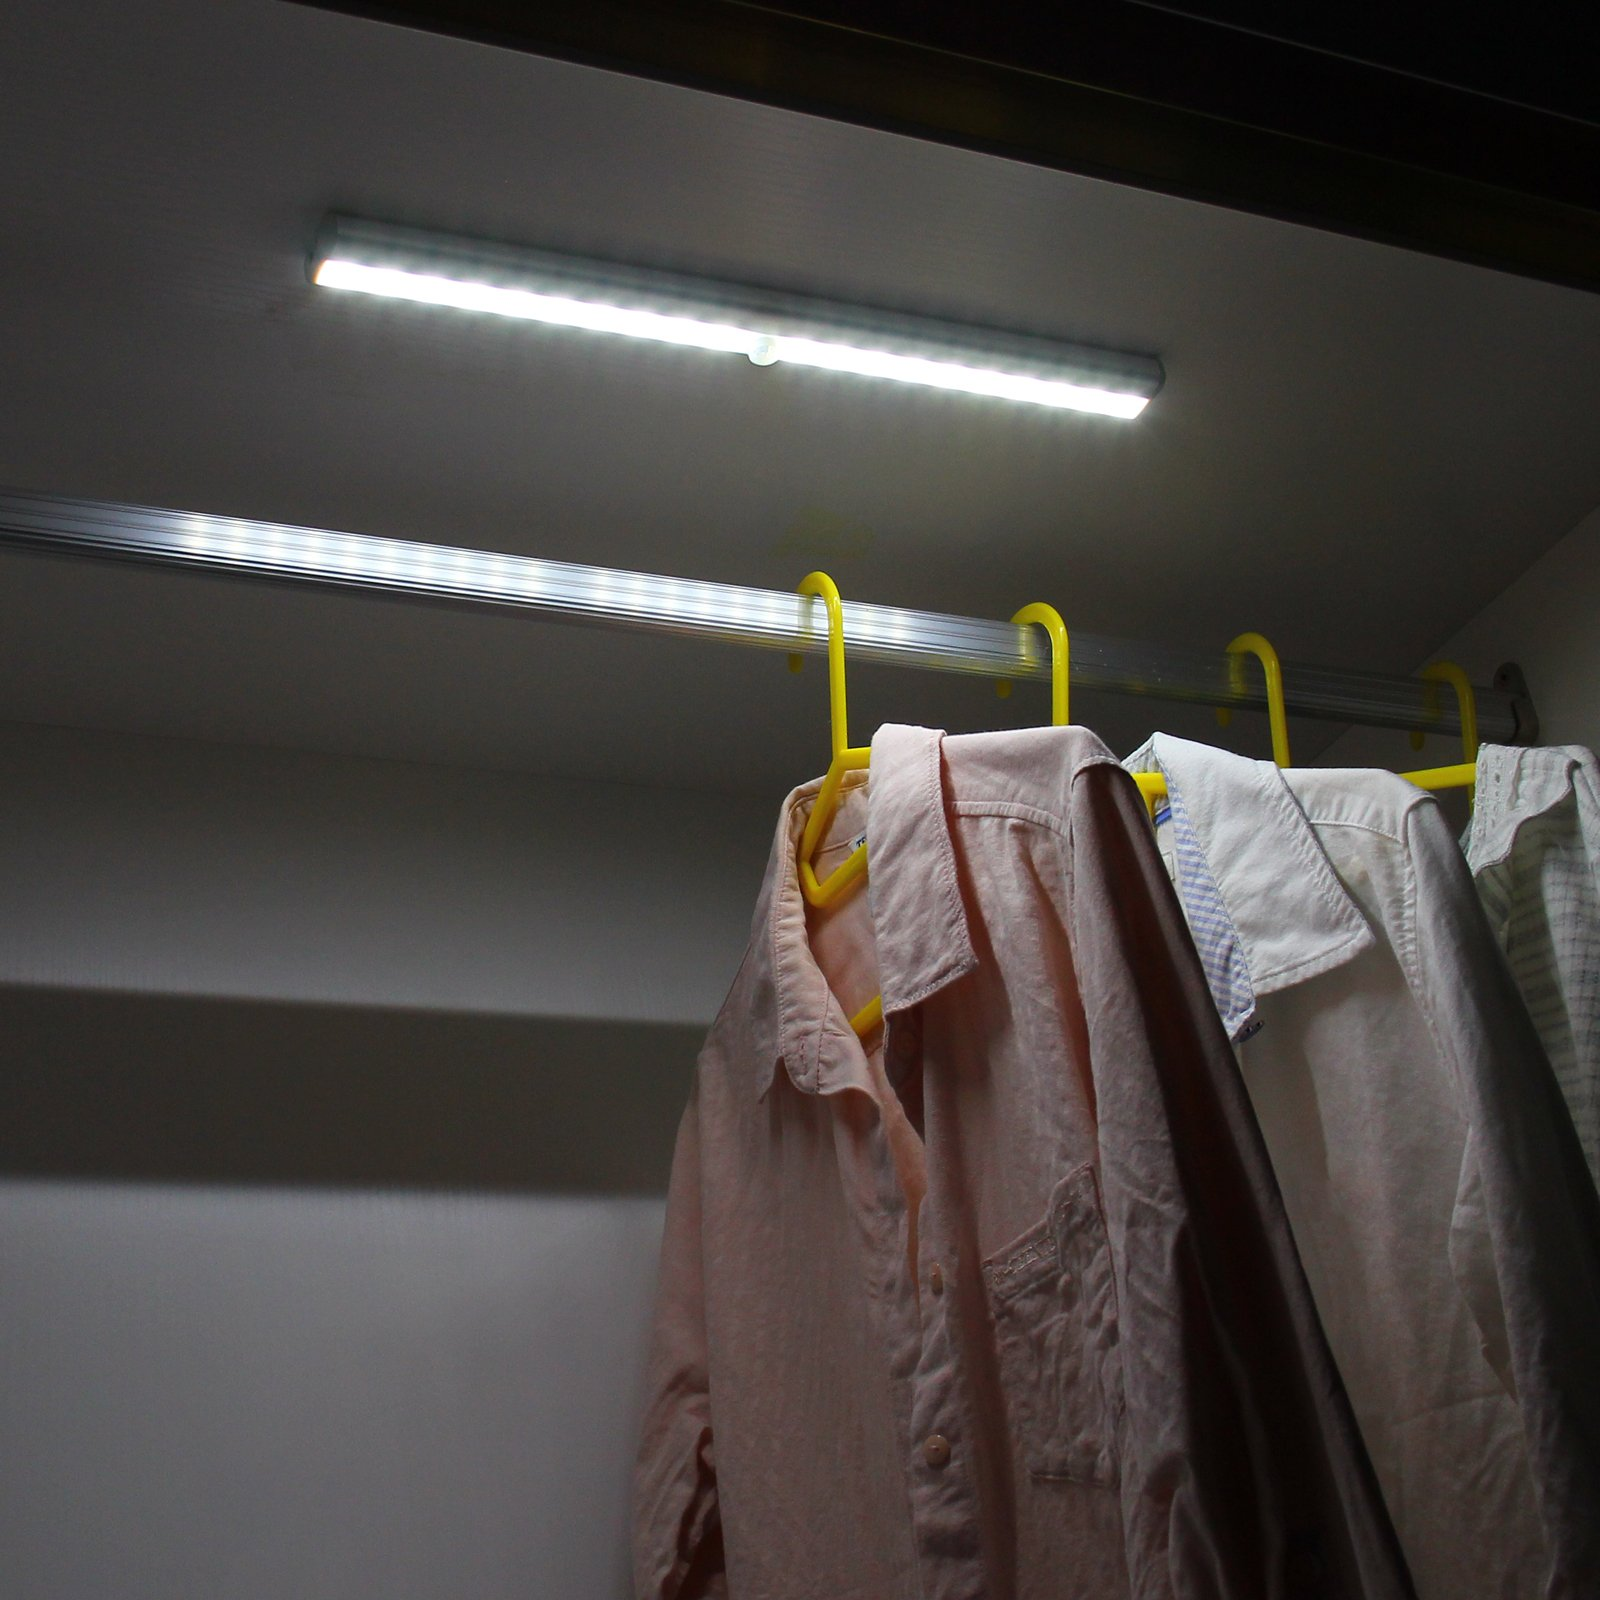 OxyLED Motion Sensor Closet Lights, Wardrobe Light USB Rechargeable Under Cabinet Lightening, Stick-on Cordless 20 LED Night Light Emergency light, Safe Lights with Magnetic Strip, 1 Pack, T-02S by OxyLED (Image #8)